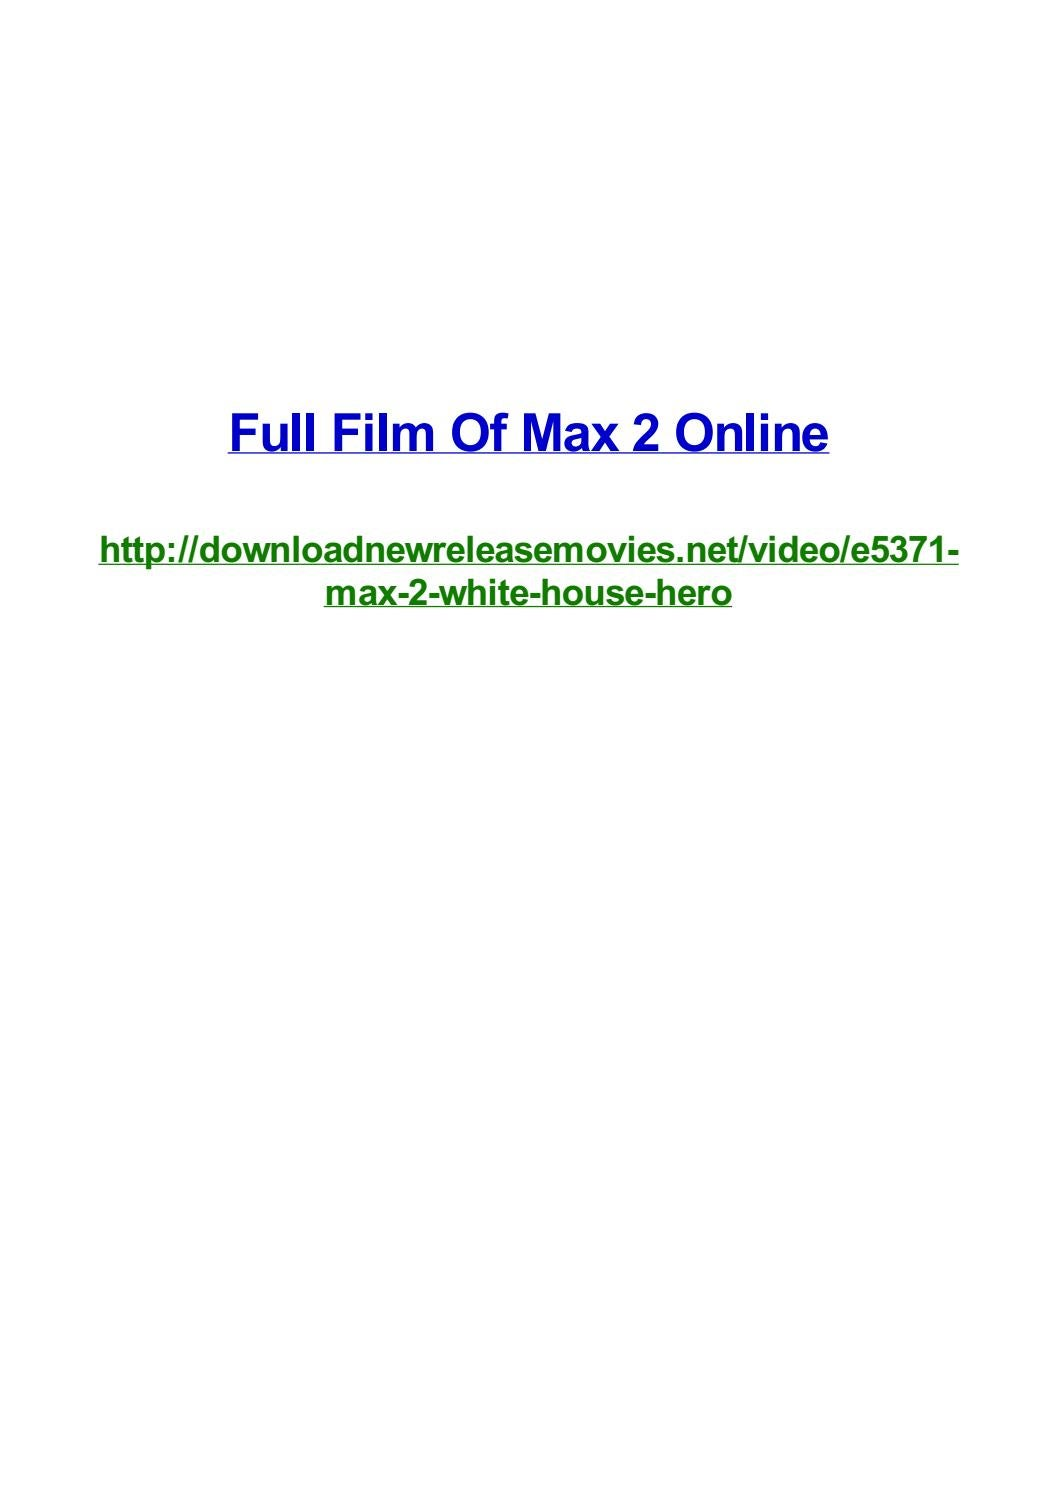 full film of max 2 online by frank seamons issuu issuu